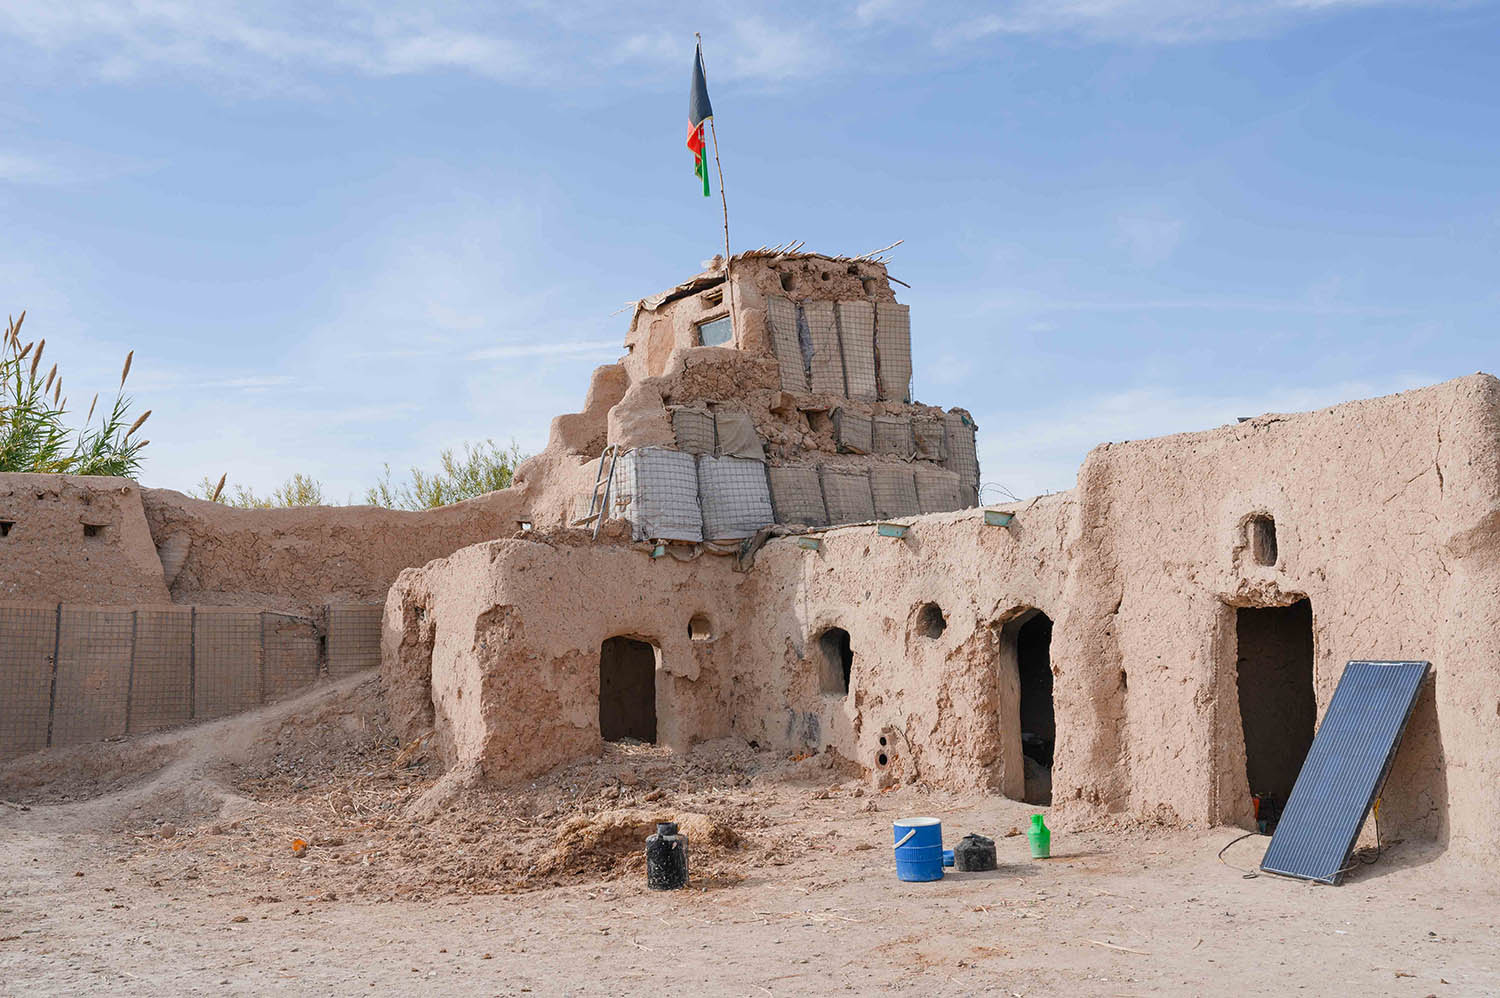 An ANA outpost sits along the main road between Lashkargah and Kandahar on Nov. 19, 2019. A network of small underground tunnels dug by the soldiers offer a final fallback position in the event that the outpost is overrun by Taliban forces. A single solar panel provides the only electricity.